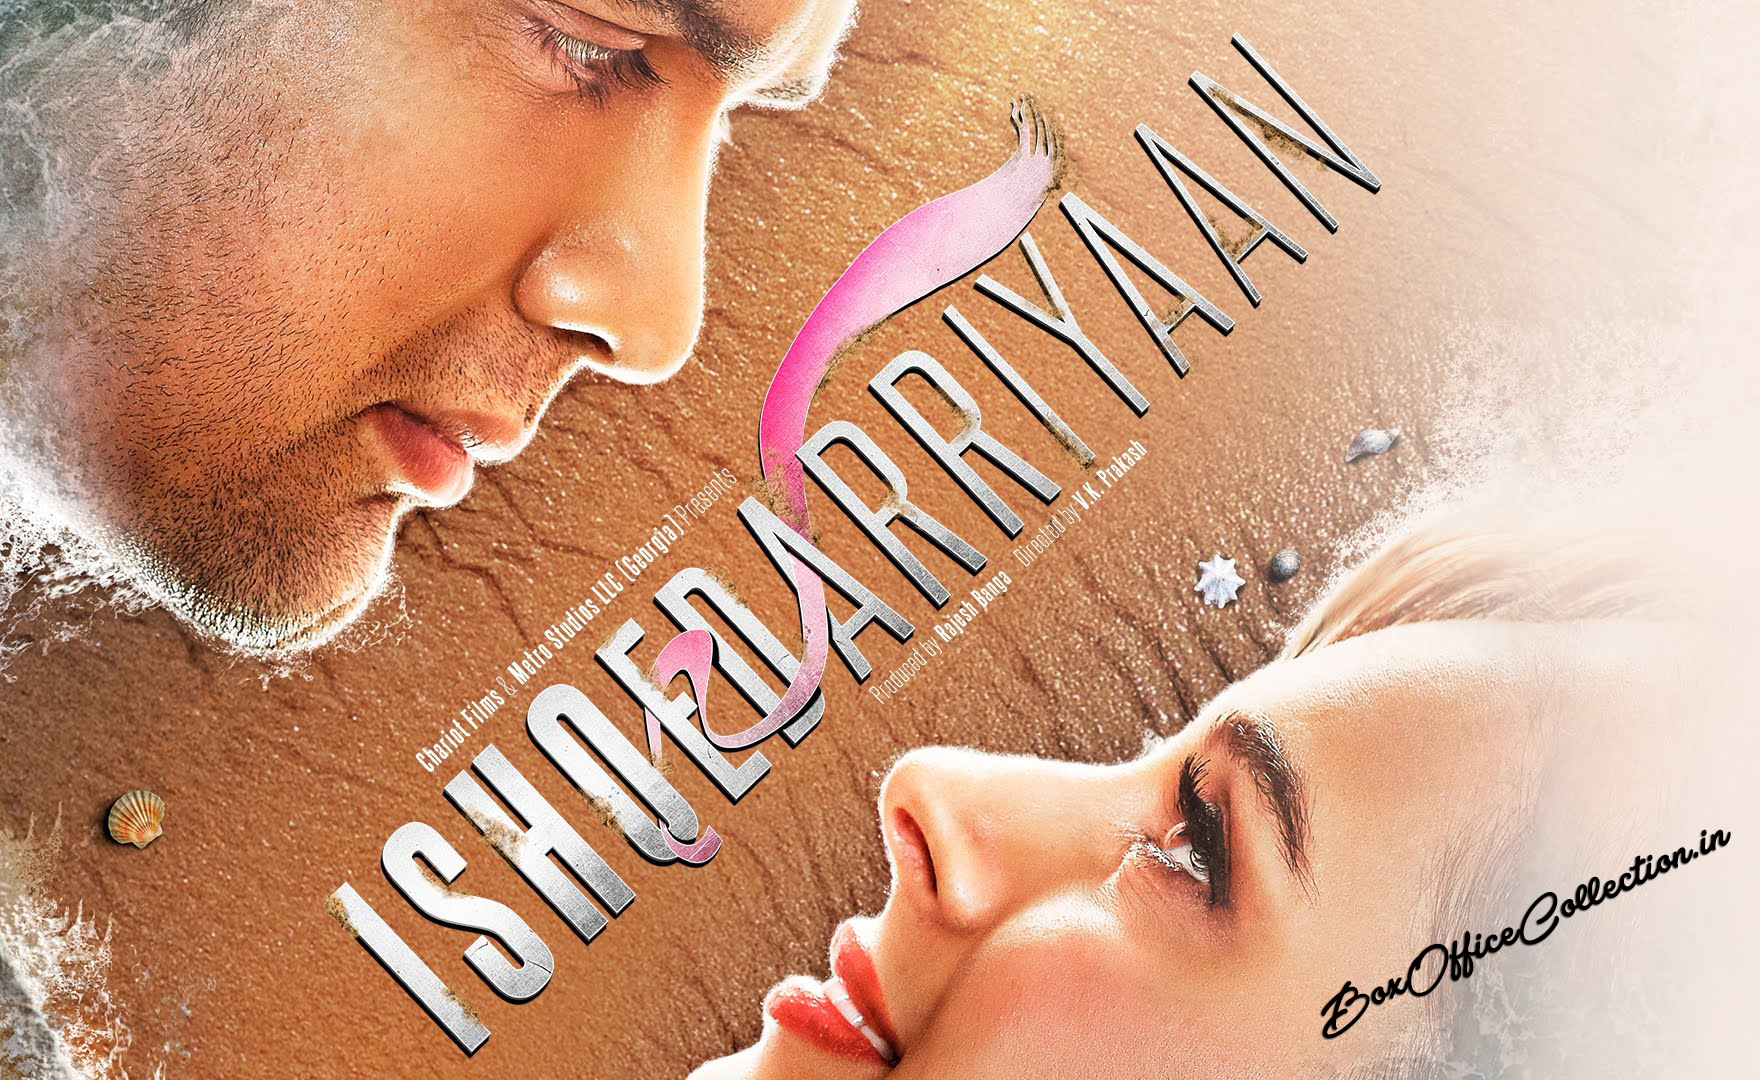 First Day Box Office Collection of Ishqedarriyaan